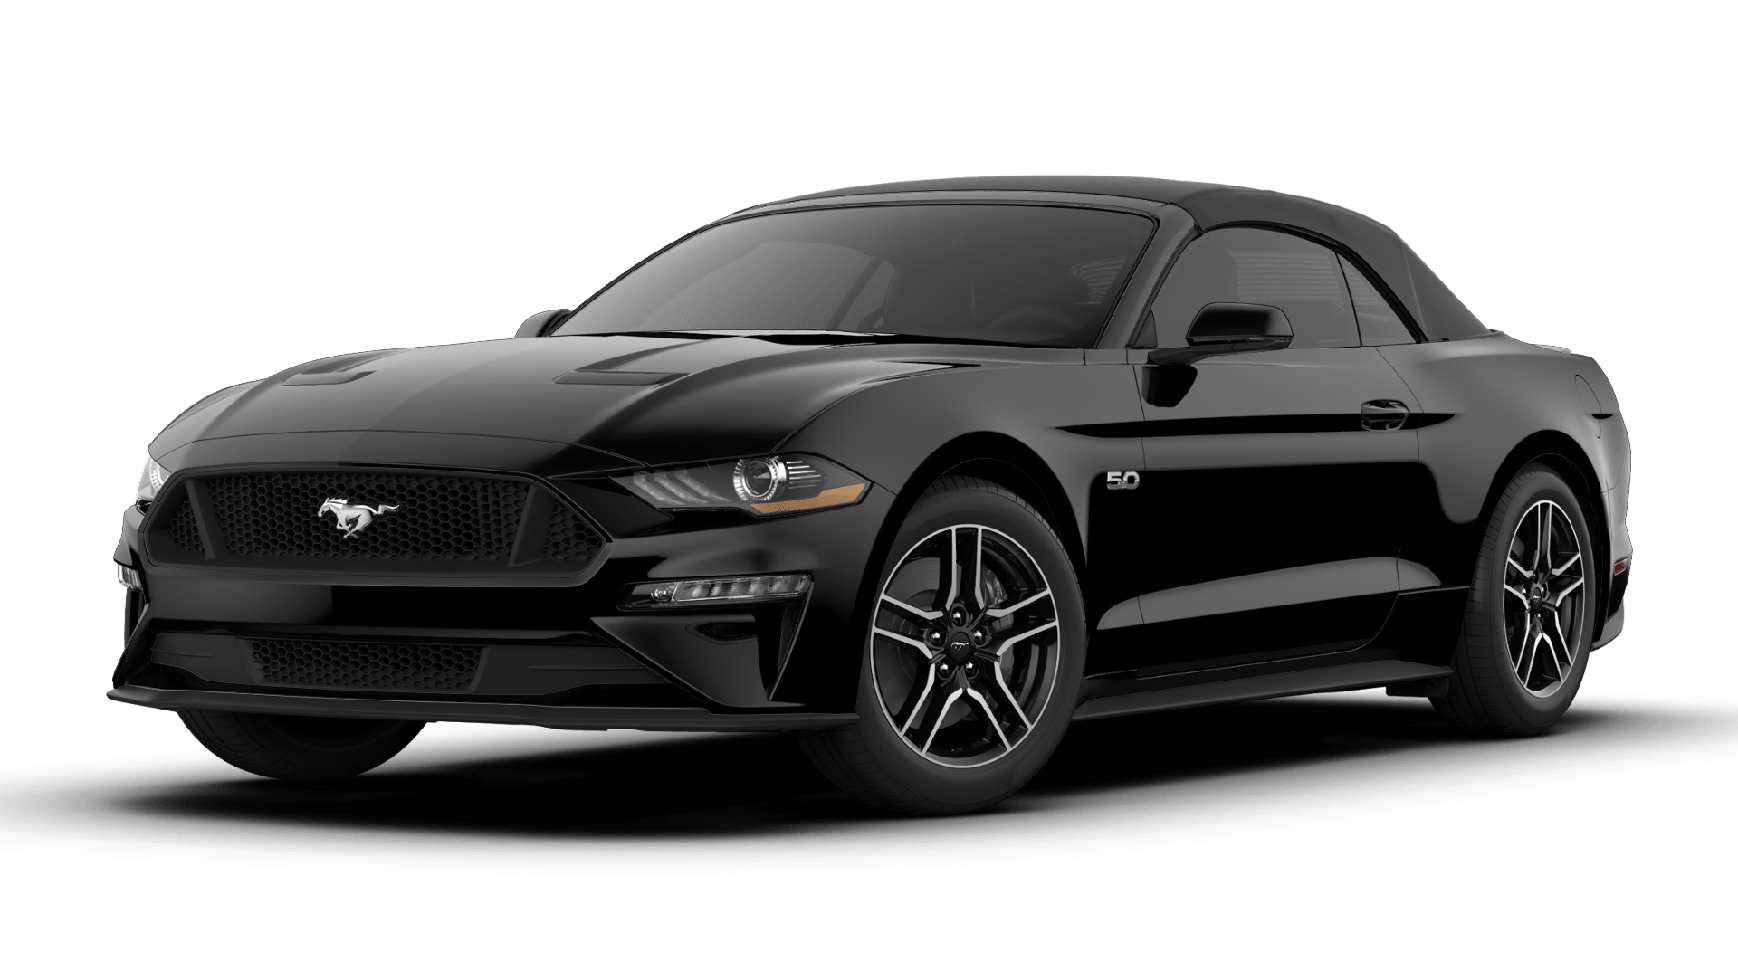 Ford Mustang 2019 GT Premium Convertible